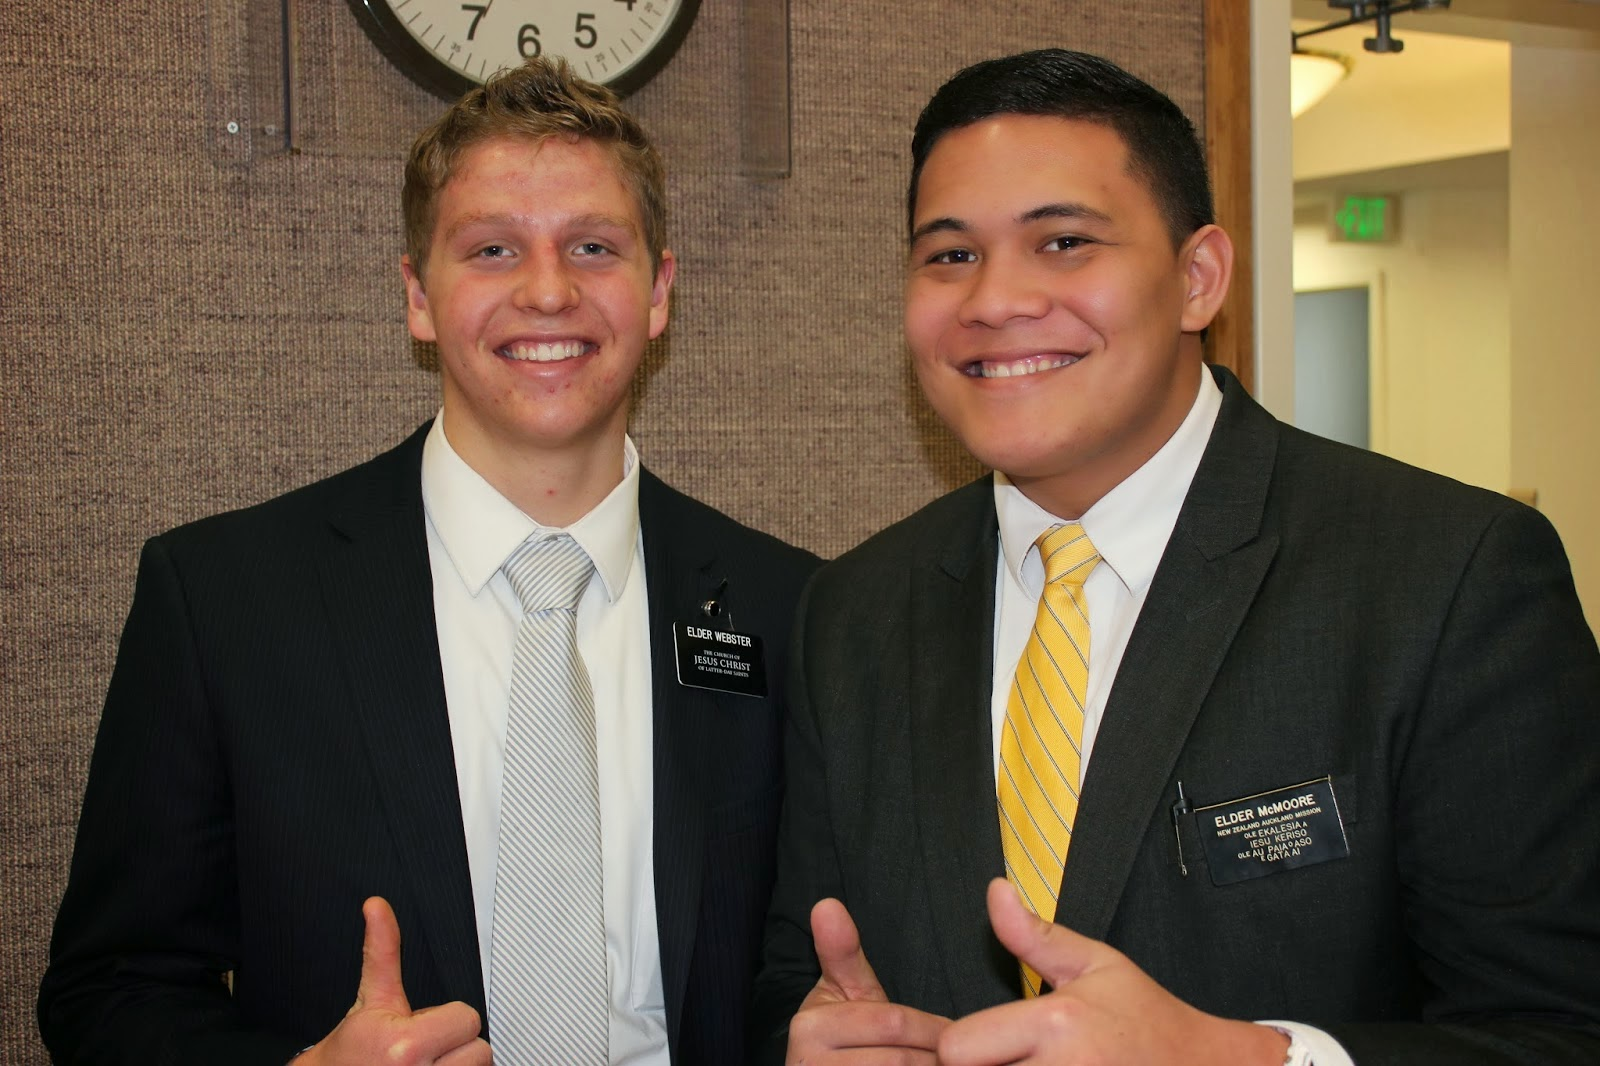 Elder Webster and I